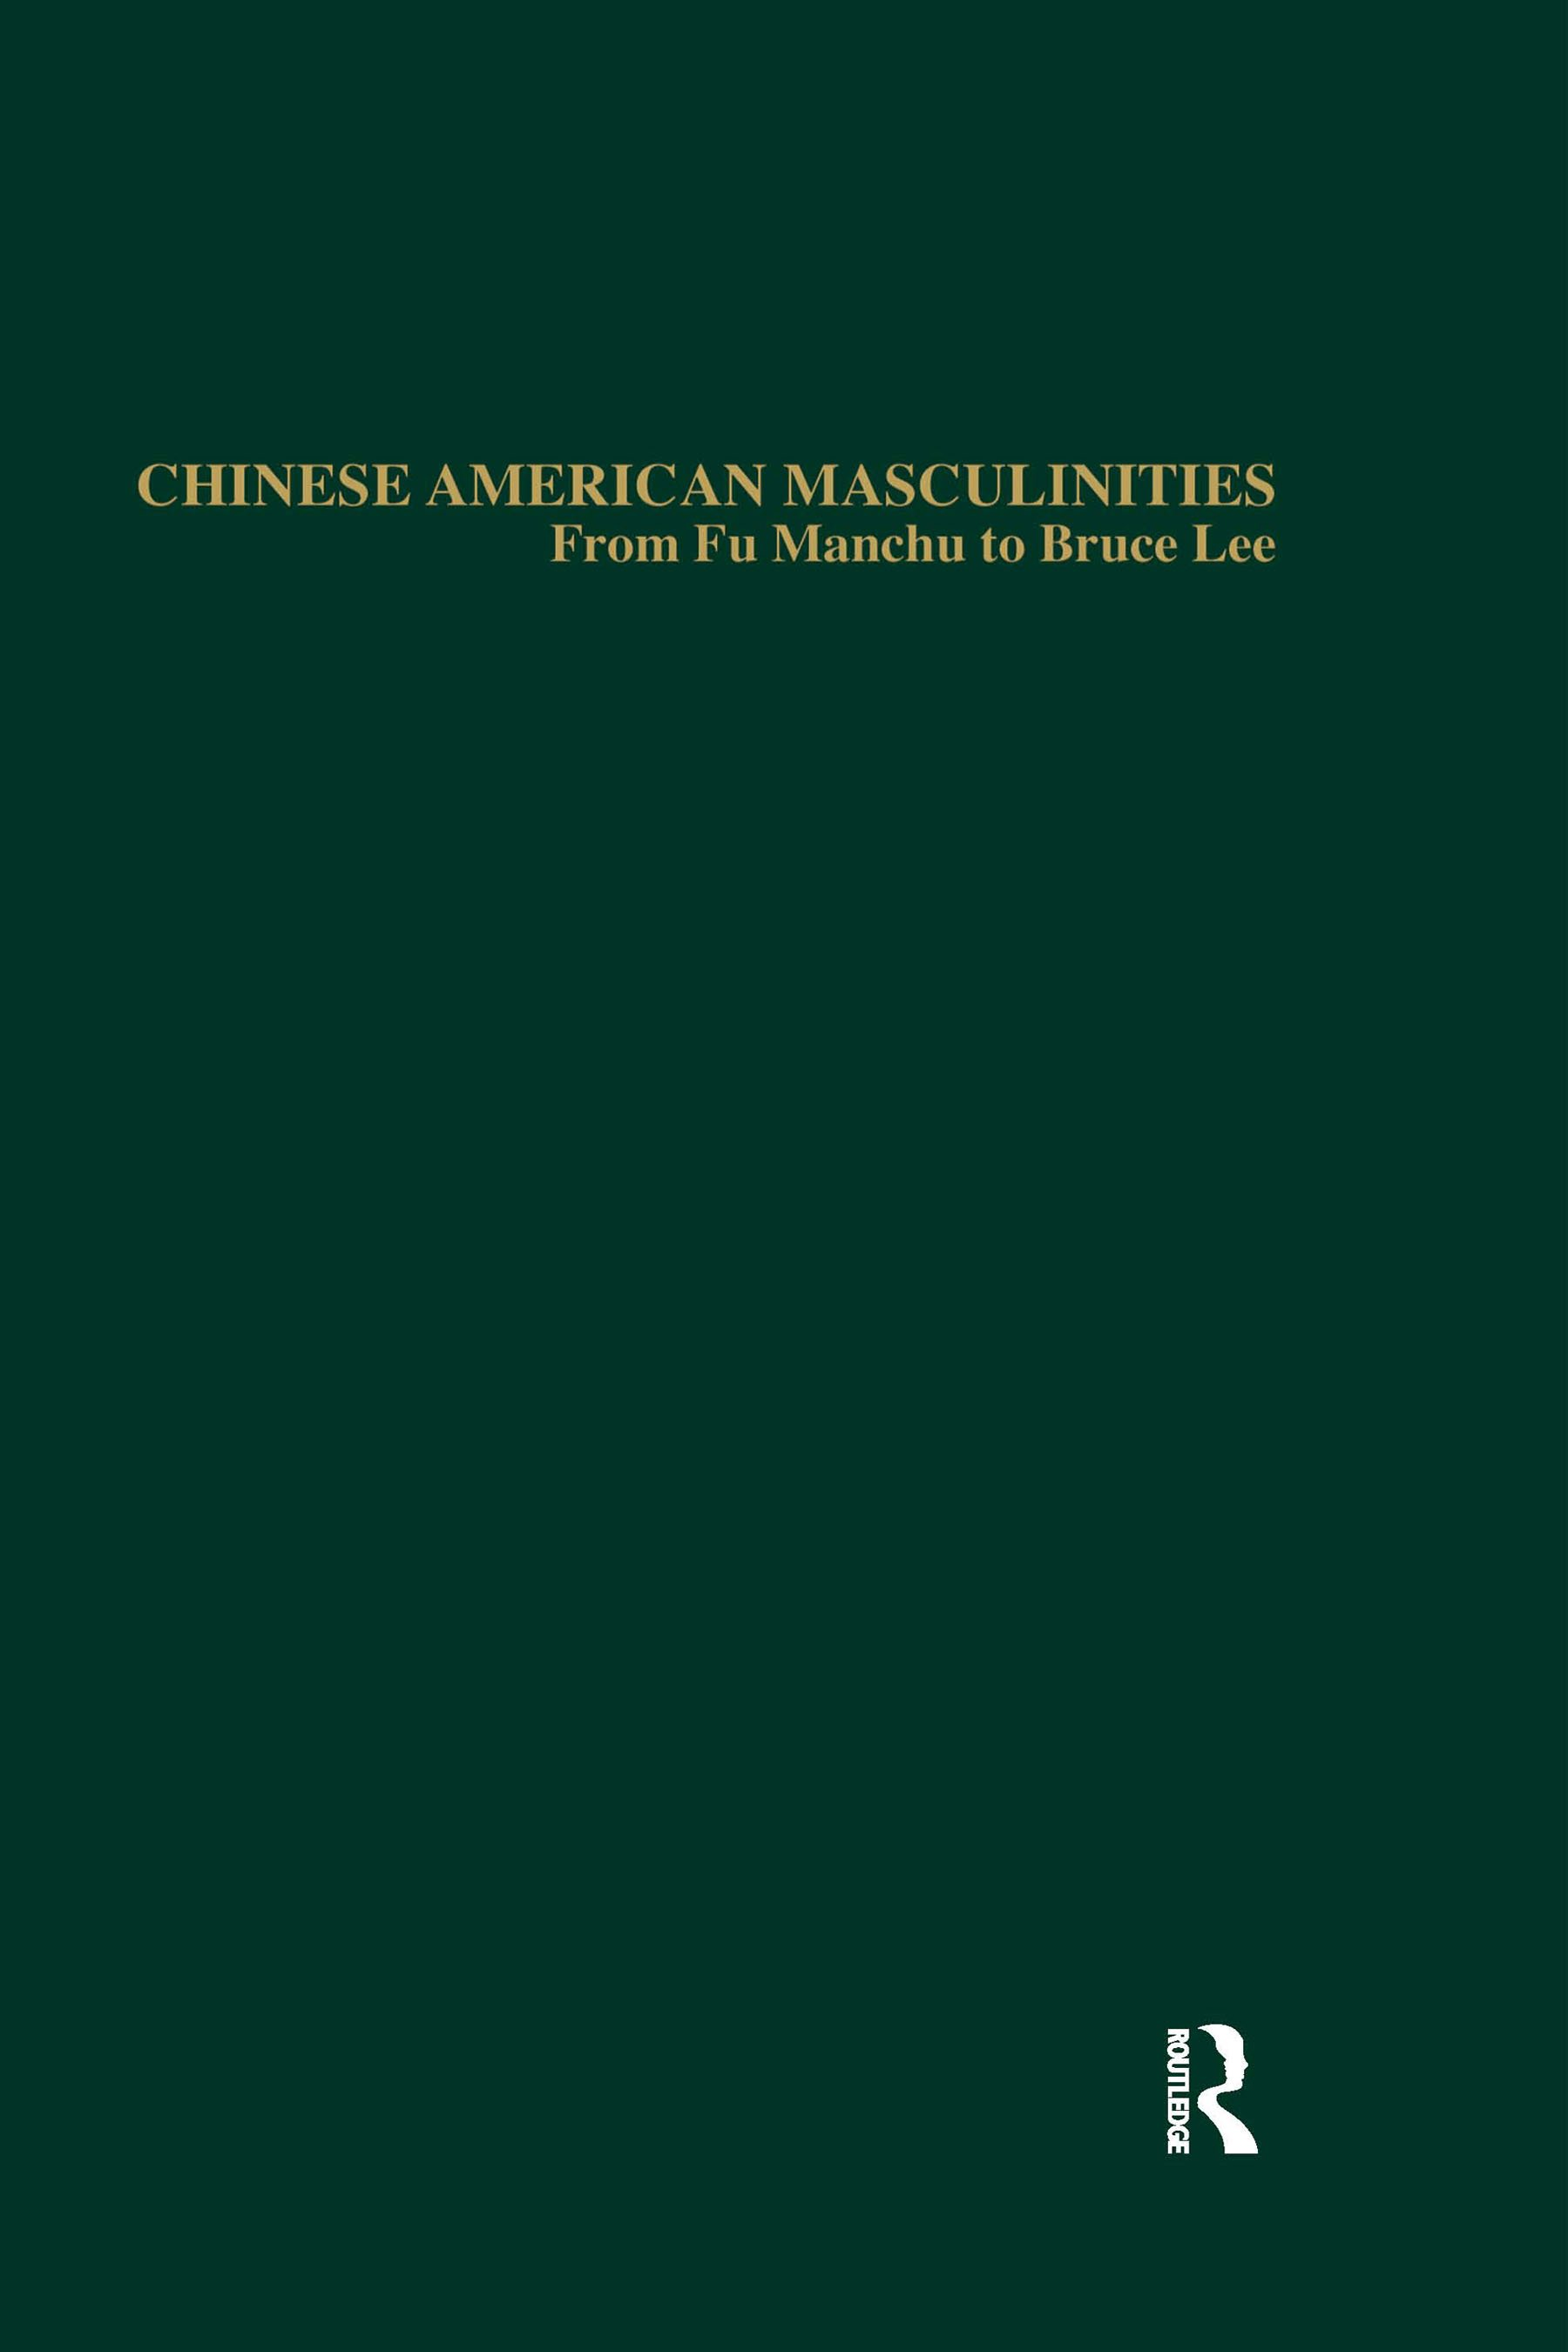 Chinese American Masculinities: From Fu Manchu to Bruce Lee book cover